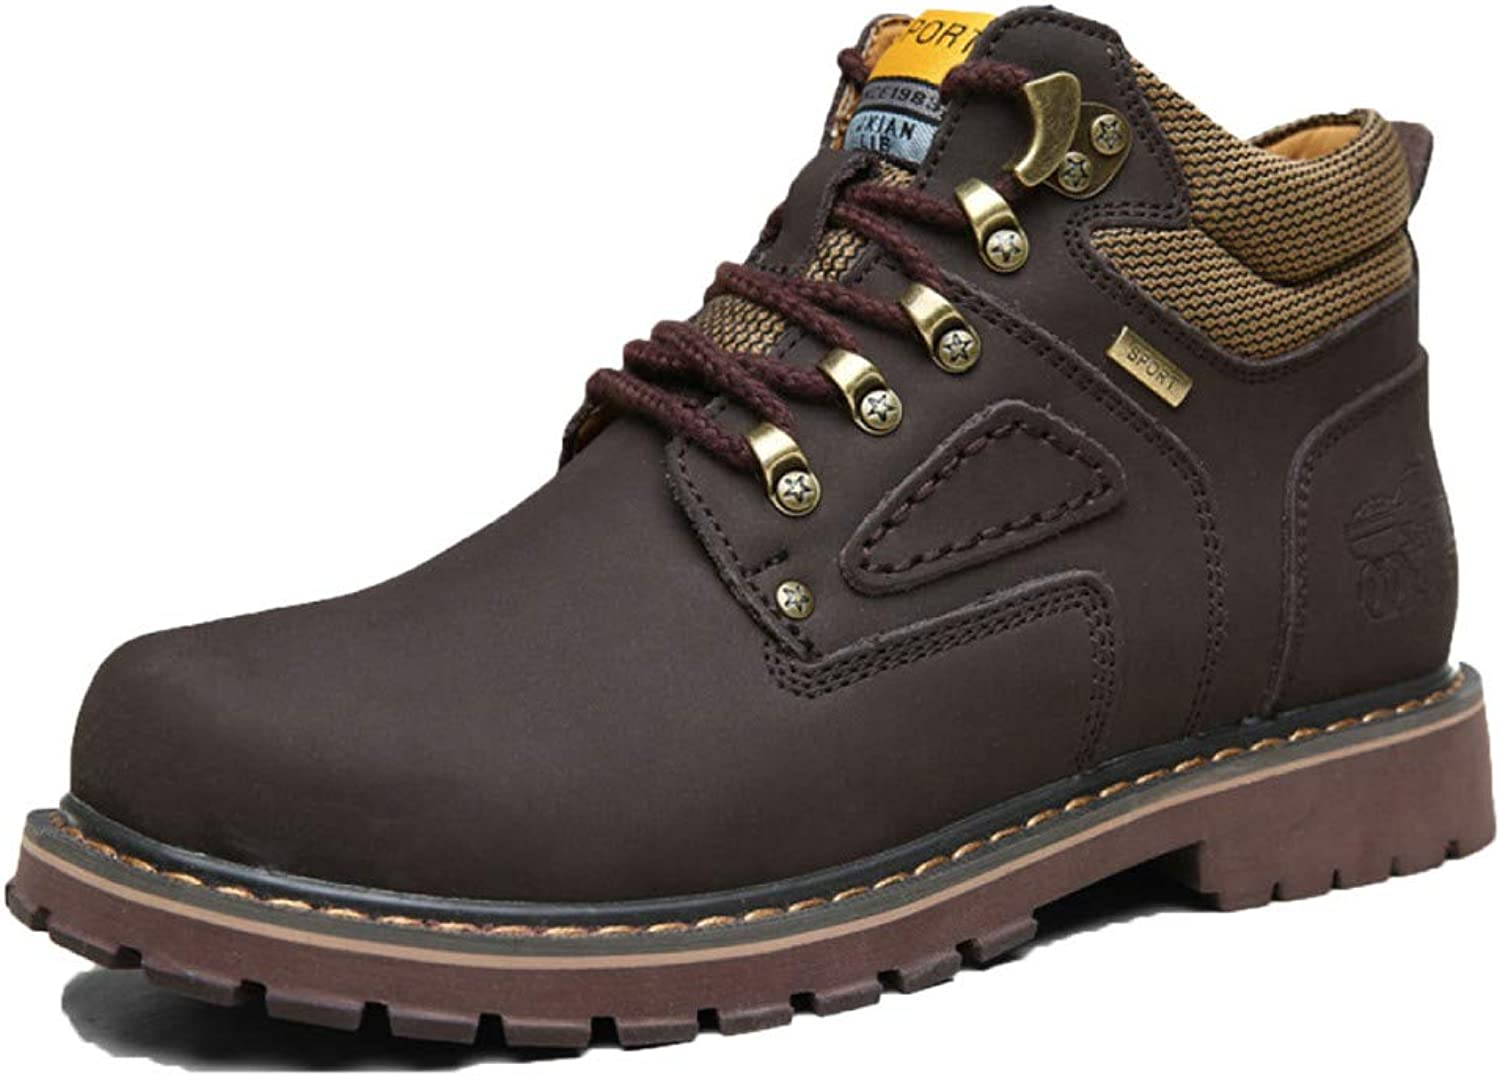 Snfgoij Work Boots Mens Waterproof Trainers shoes Autumn High Boots Ankle Boots Martin Boots Military Boots